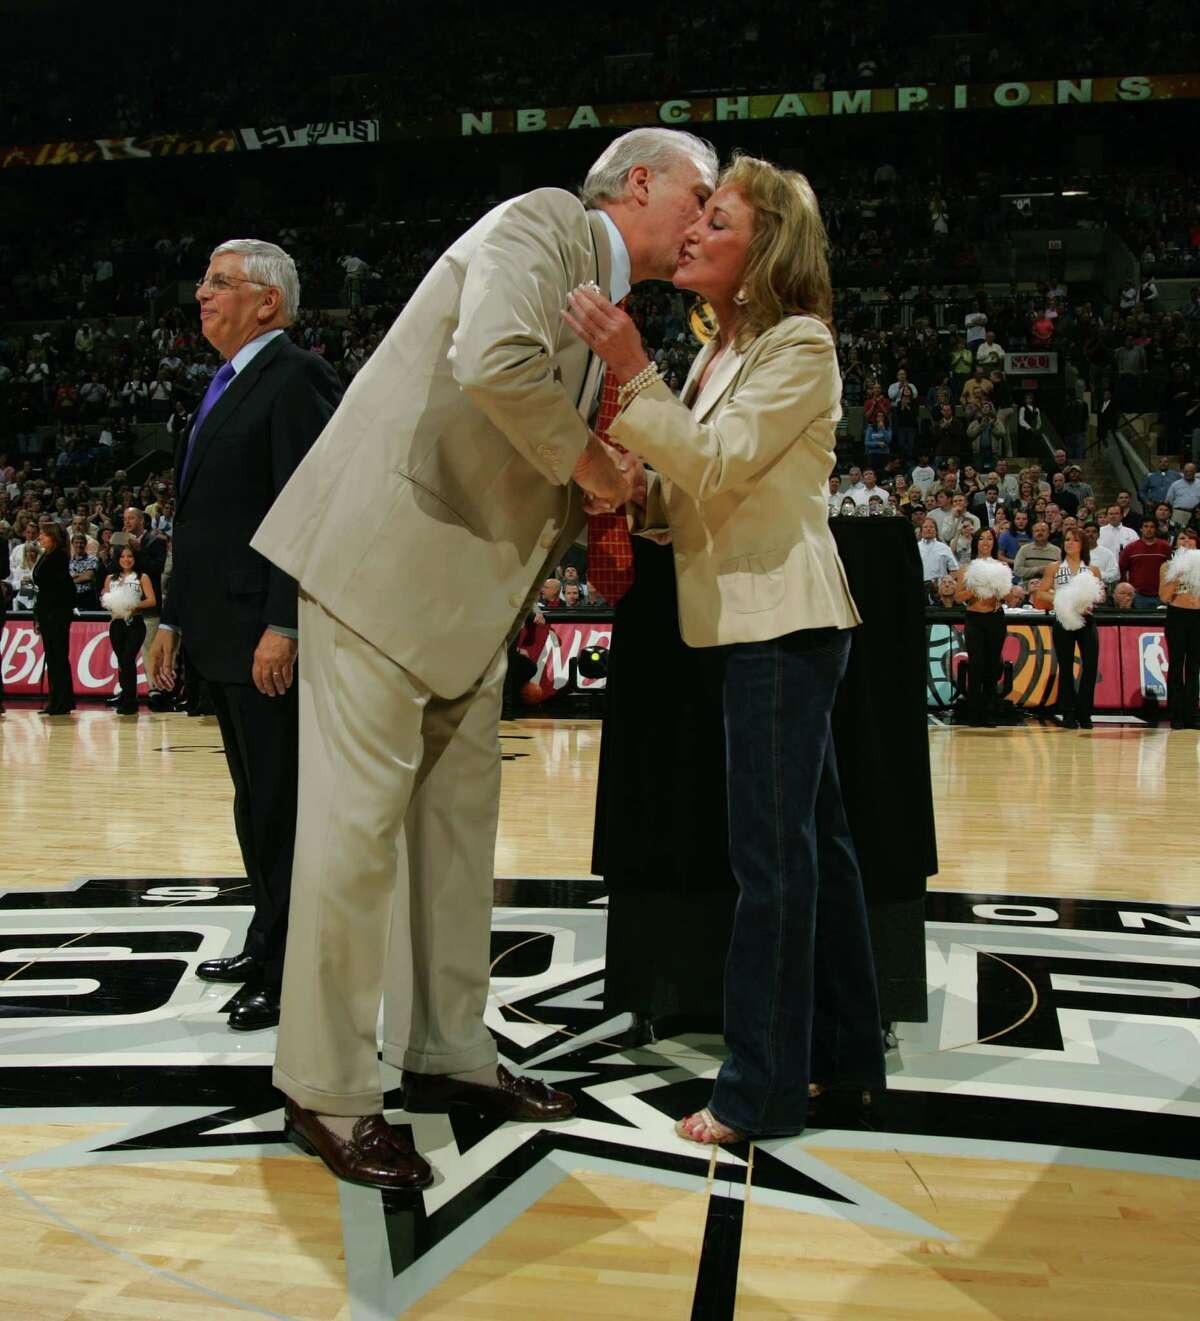 Julianna Hawn Holt (right) Holt is the Chairwoman and CEO of Spurs & Sports Entertainment. She took over the positions after Peter Holt retired in March 2016.